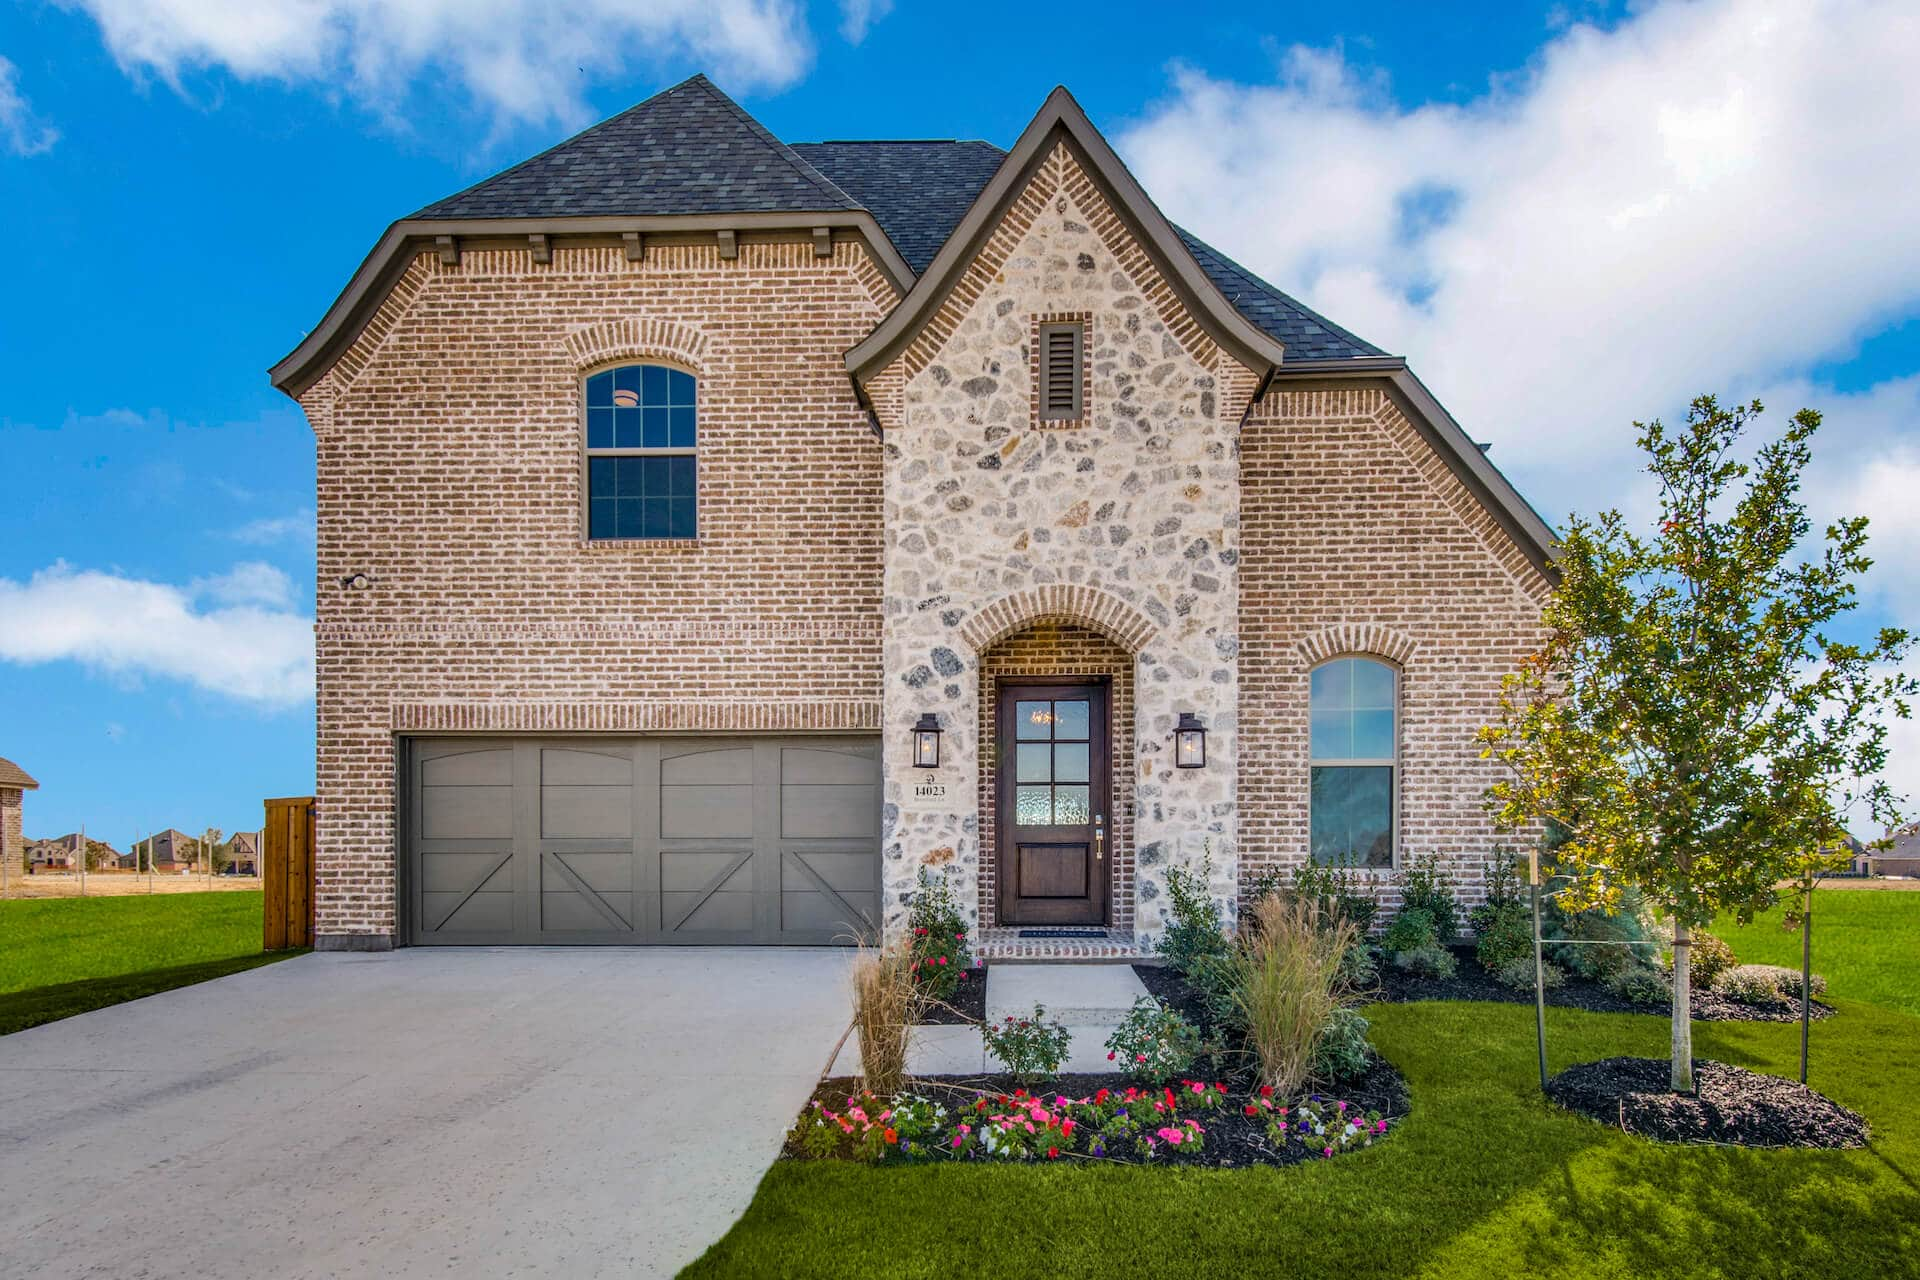 Frisco Neighborhood Guide: Estates at Shaddock Park on lennar homes plymouth mn, mainvue homes plano tx, lennar homes wesley chapel fl, lennar homes raleigh nc, lennar homes henderson nv, lennar homes roseville ca,